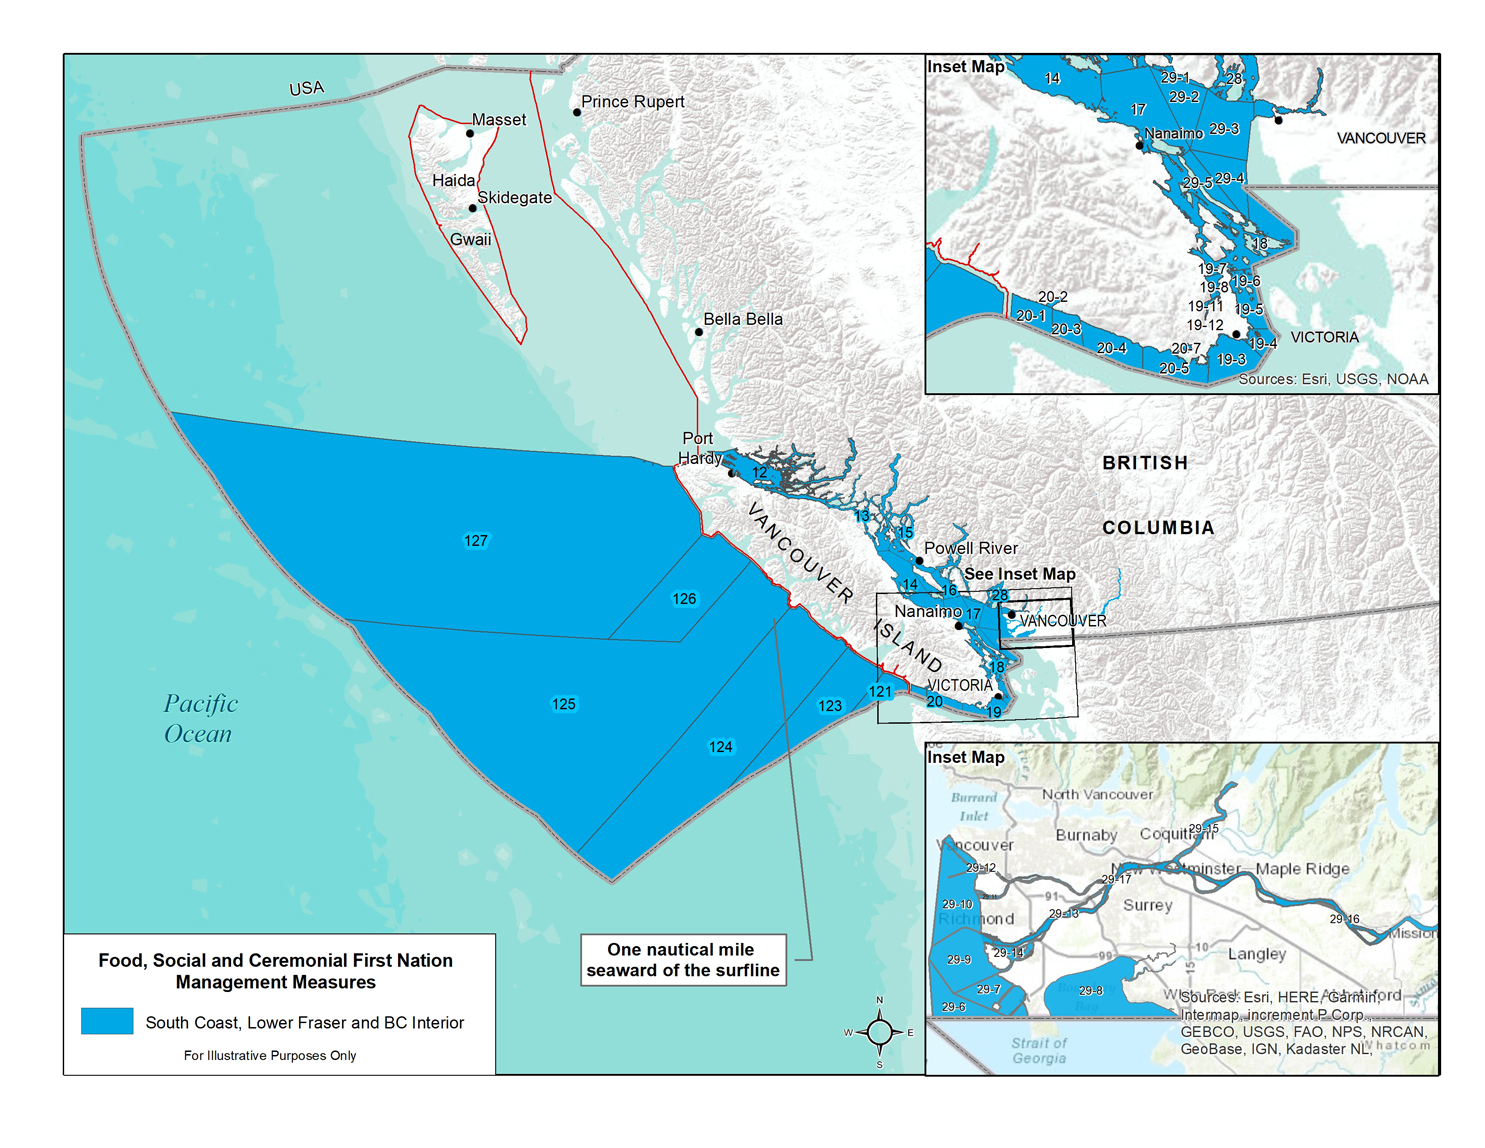 2019 fisheries management measures to protect Fraser River